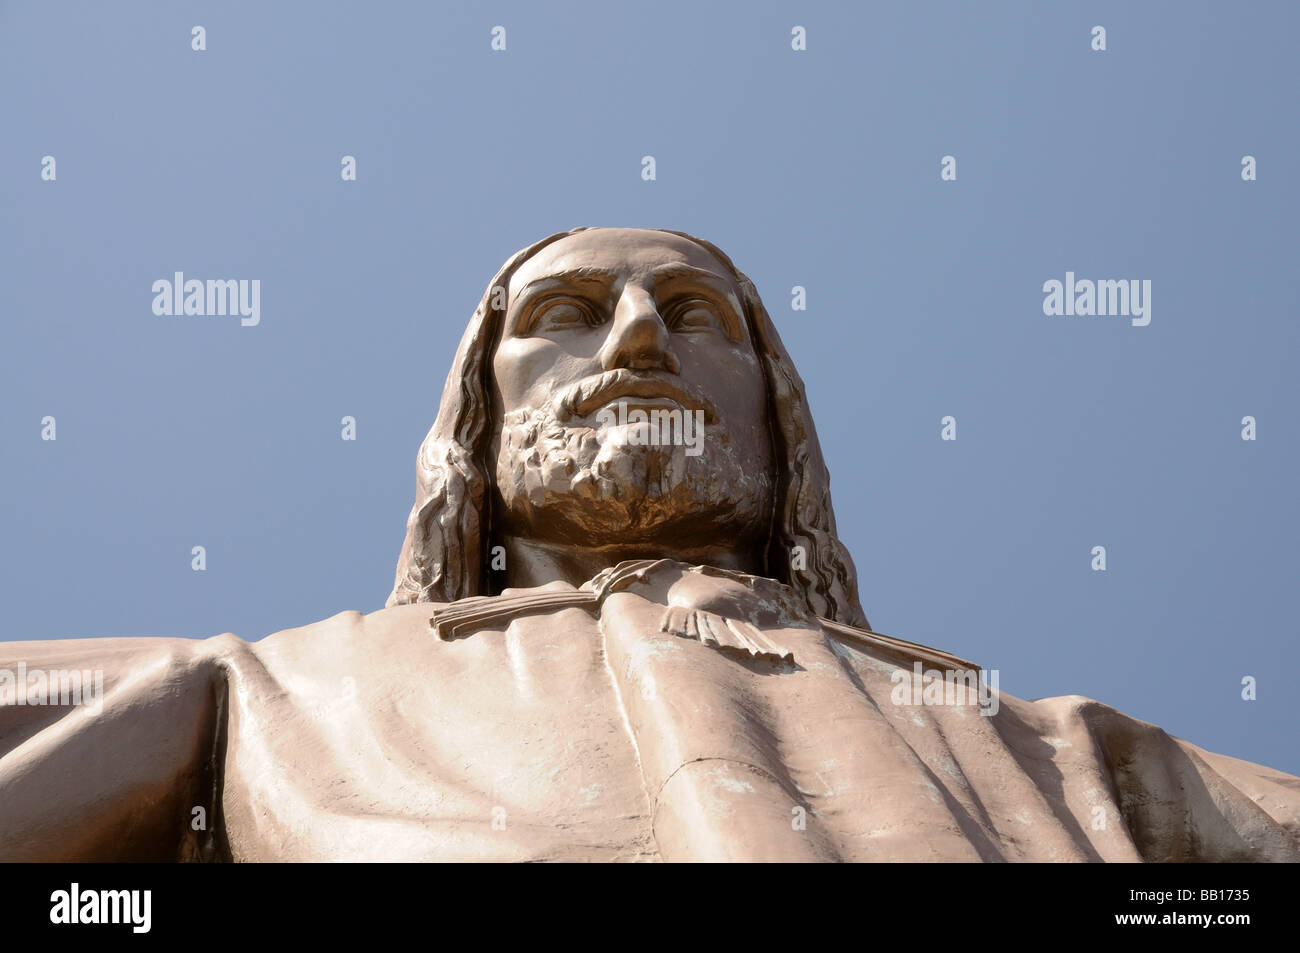 Jesus Christus Statue at Temple del Sagrad Cor in Barcelona, Spain - Stock Image